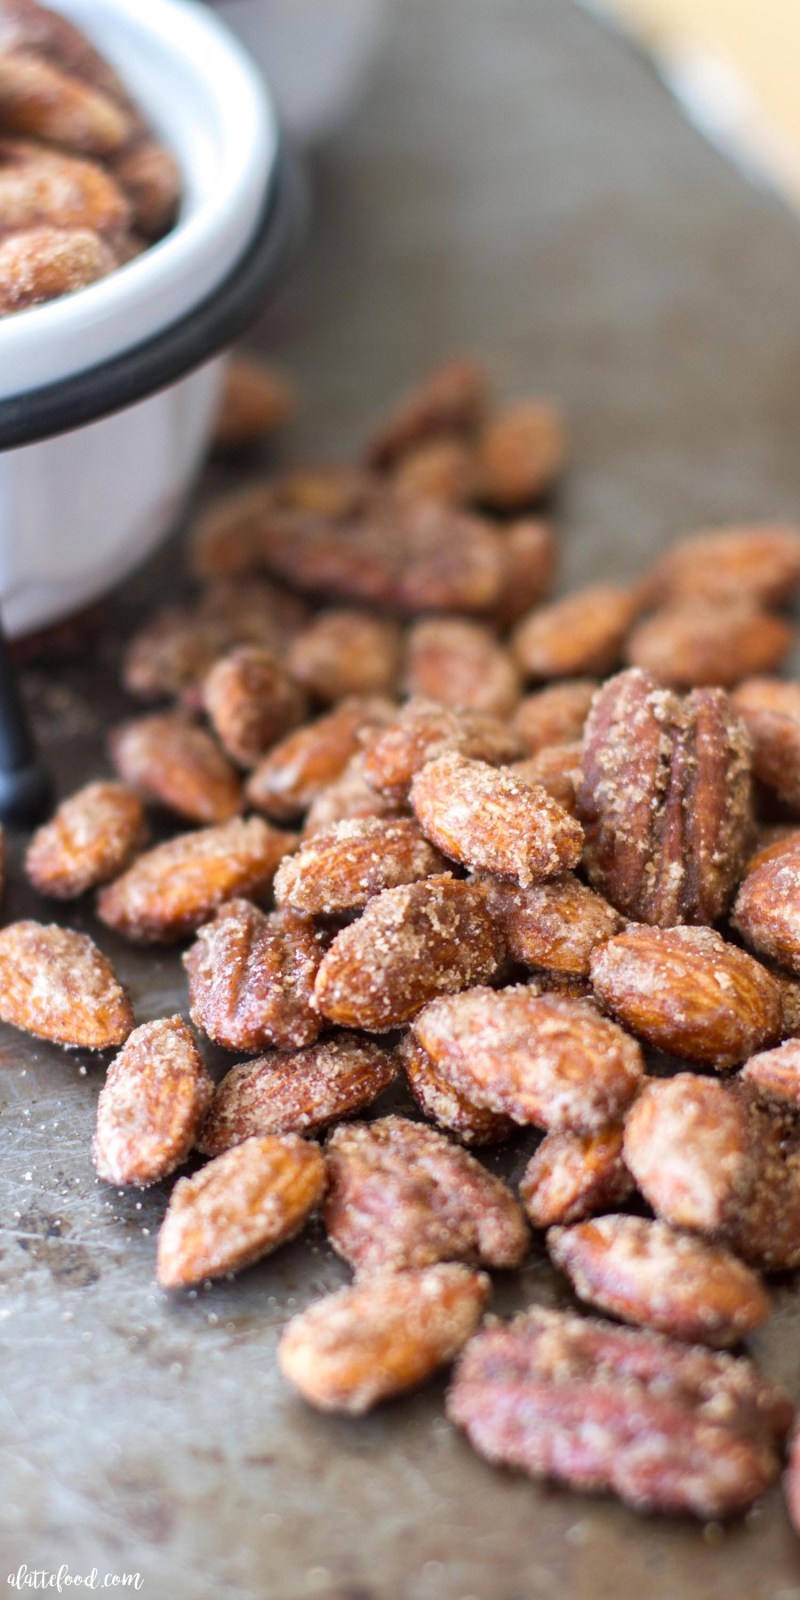 These sugared almonds and pecansare candied with a blend of pumpkin pie spice, white sugar, and brown sugar to make the most irresistible snack! Candied nuts are the ultimate fall snack, and this Pumpkin Spice Candied Nuts recipe is SO simple!